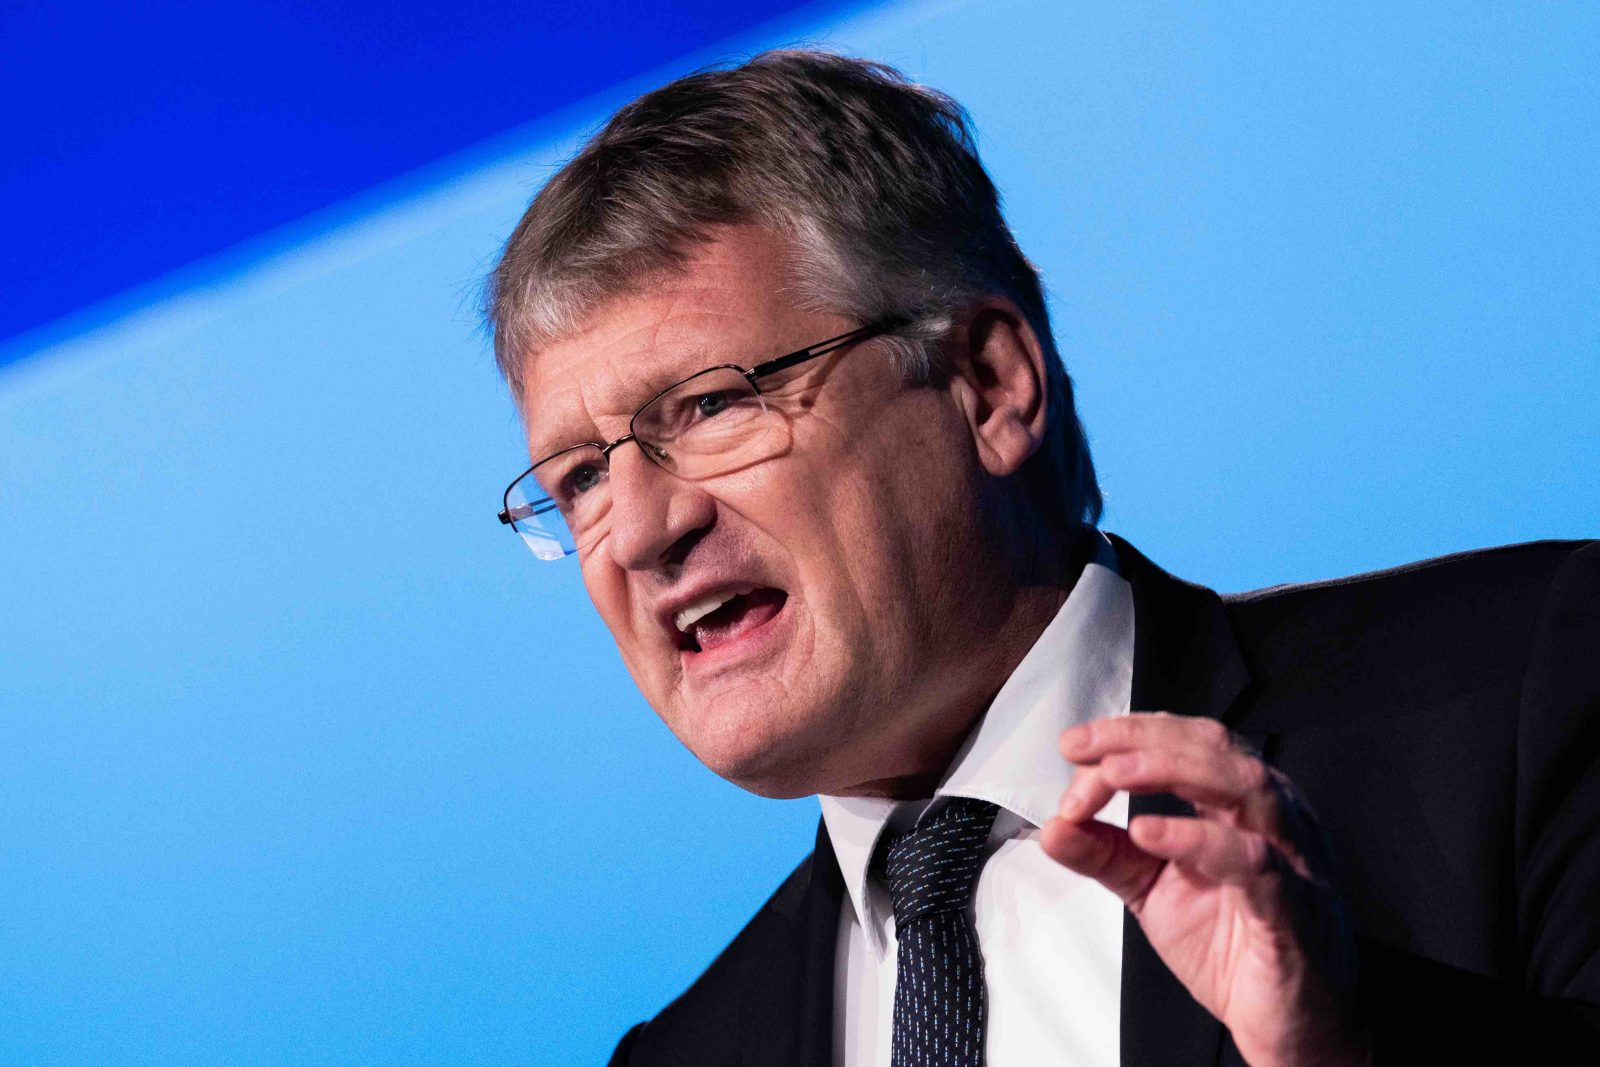 AfD Meuthen